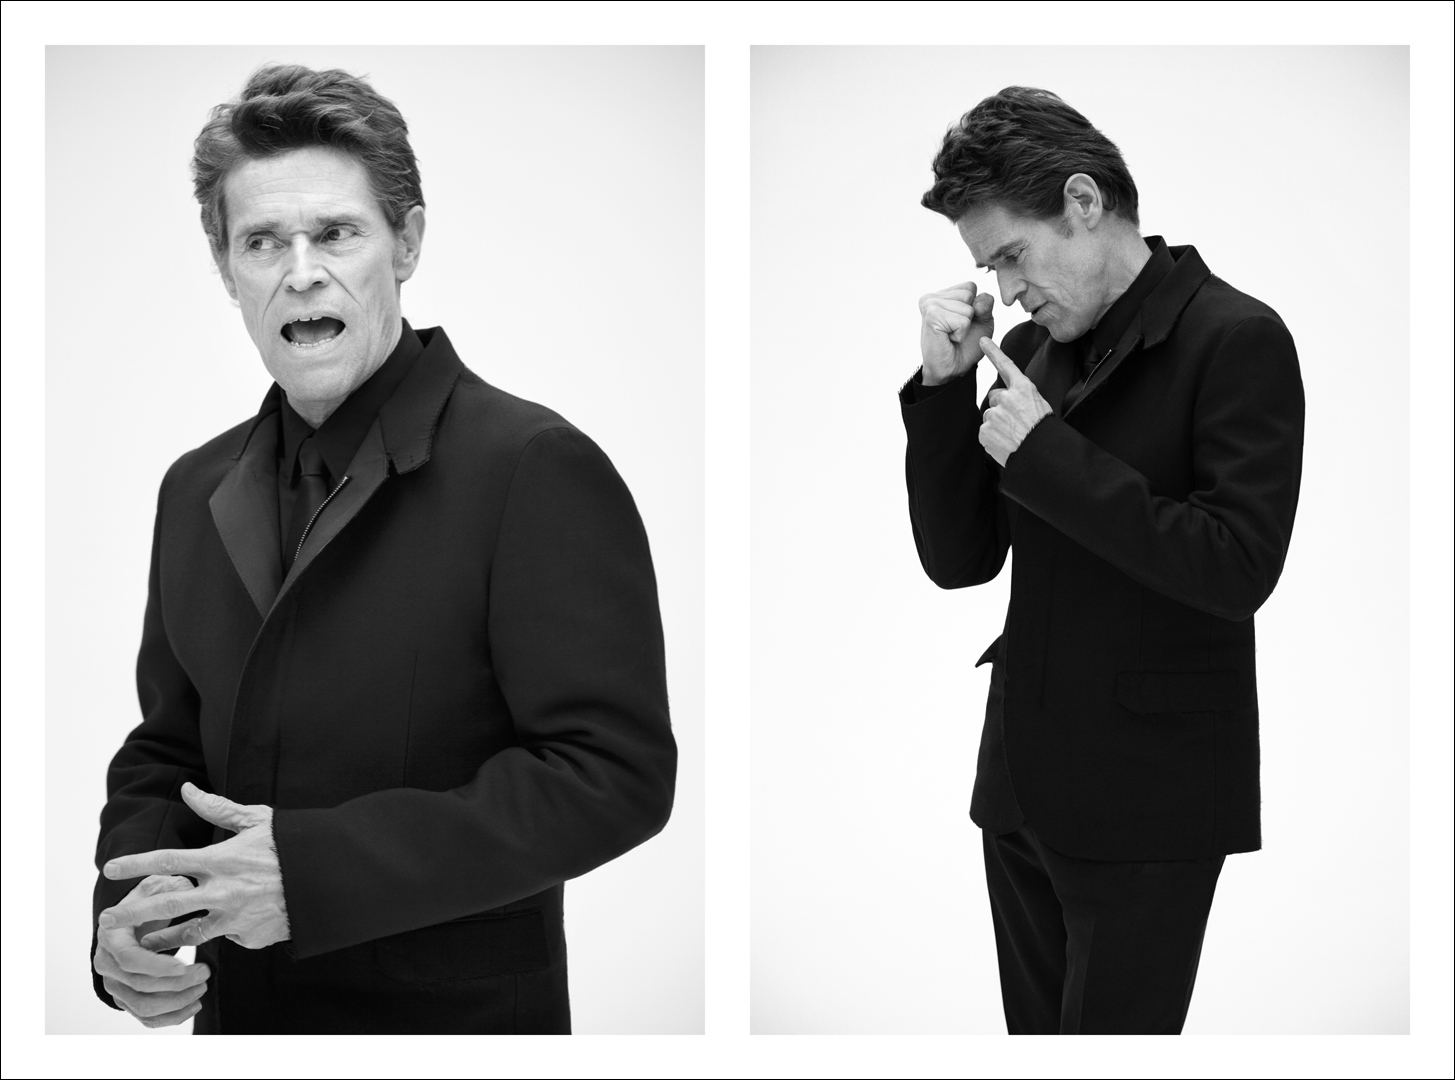 39_TIM_BARBER_WILLEM_DAFOE.jpg